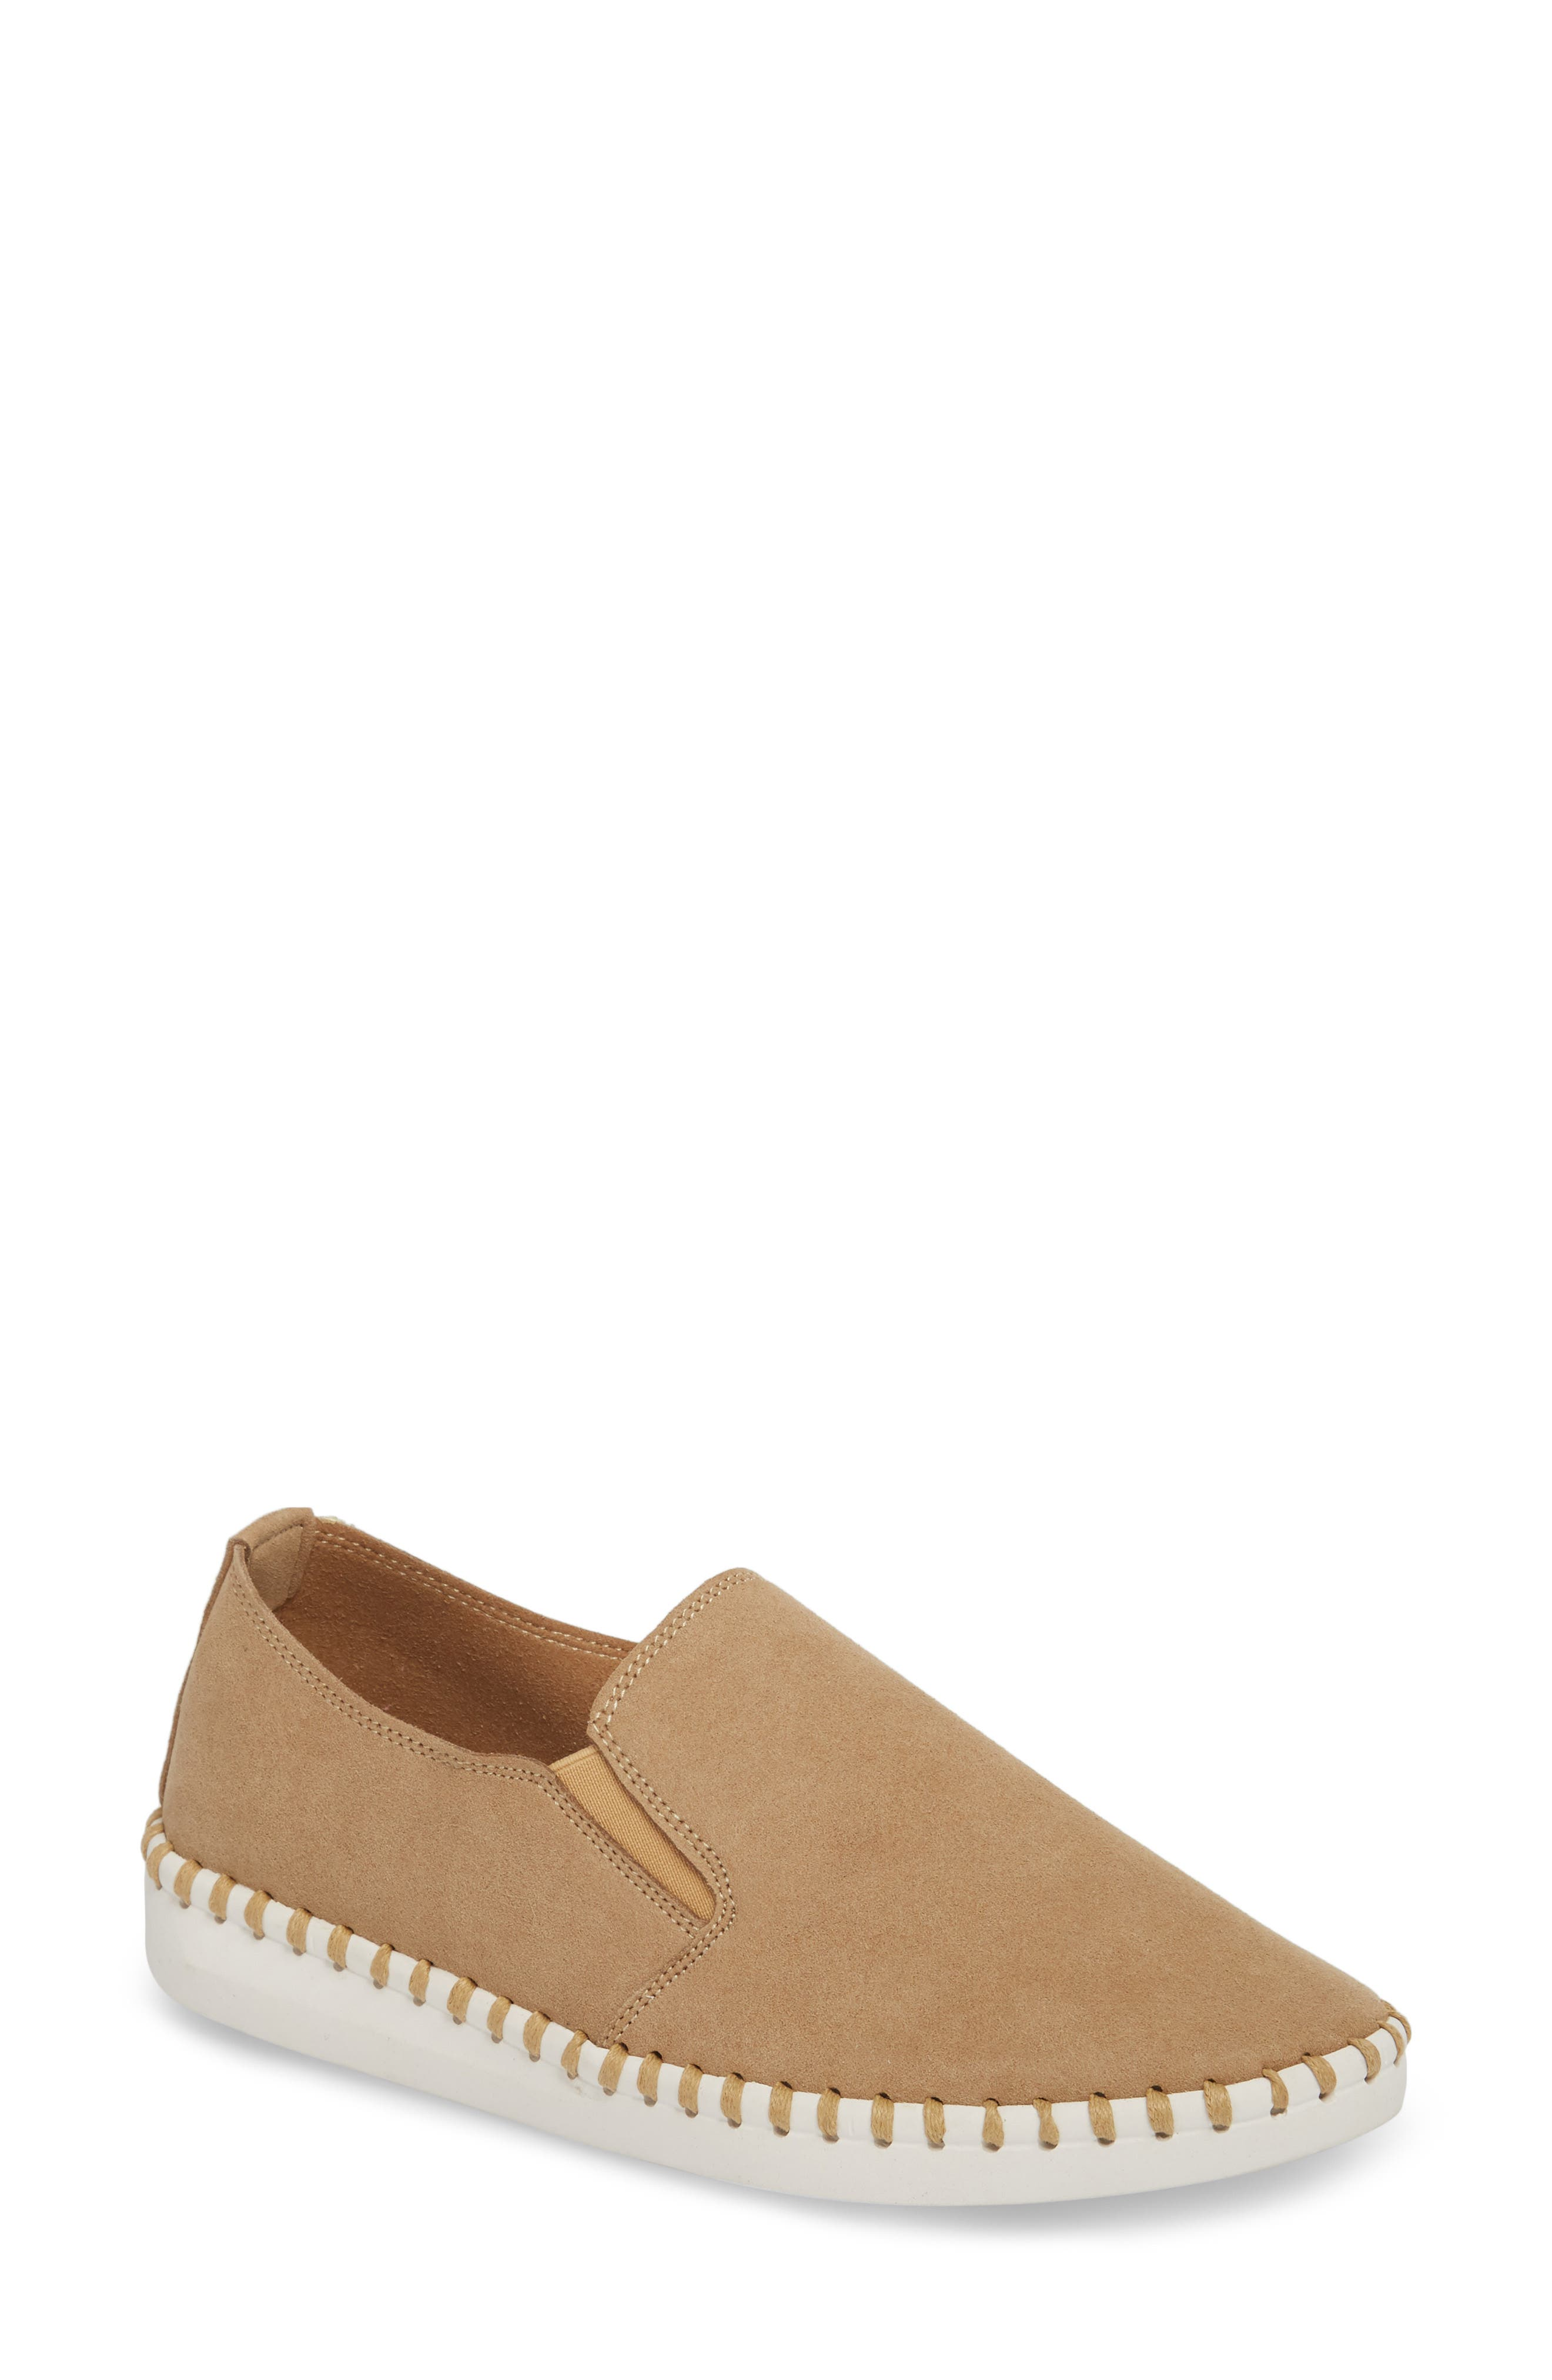 Salinas Waterproof Slip-On Sneaker,                             Main thumbnail 1, color,                             TAN FABRIC